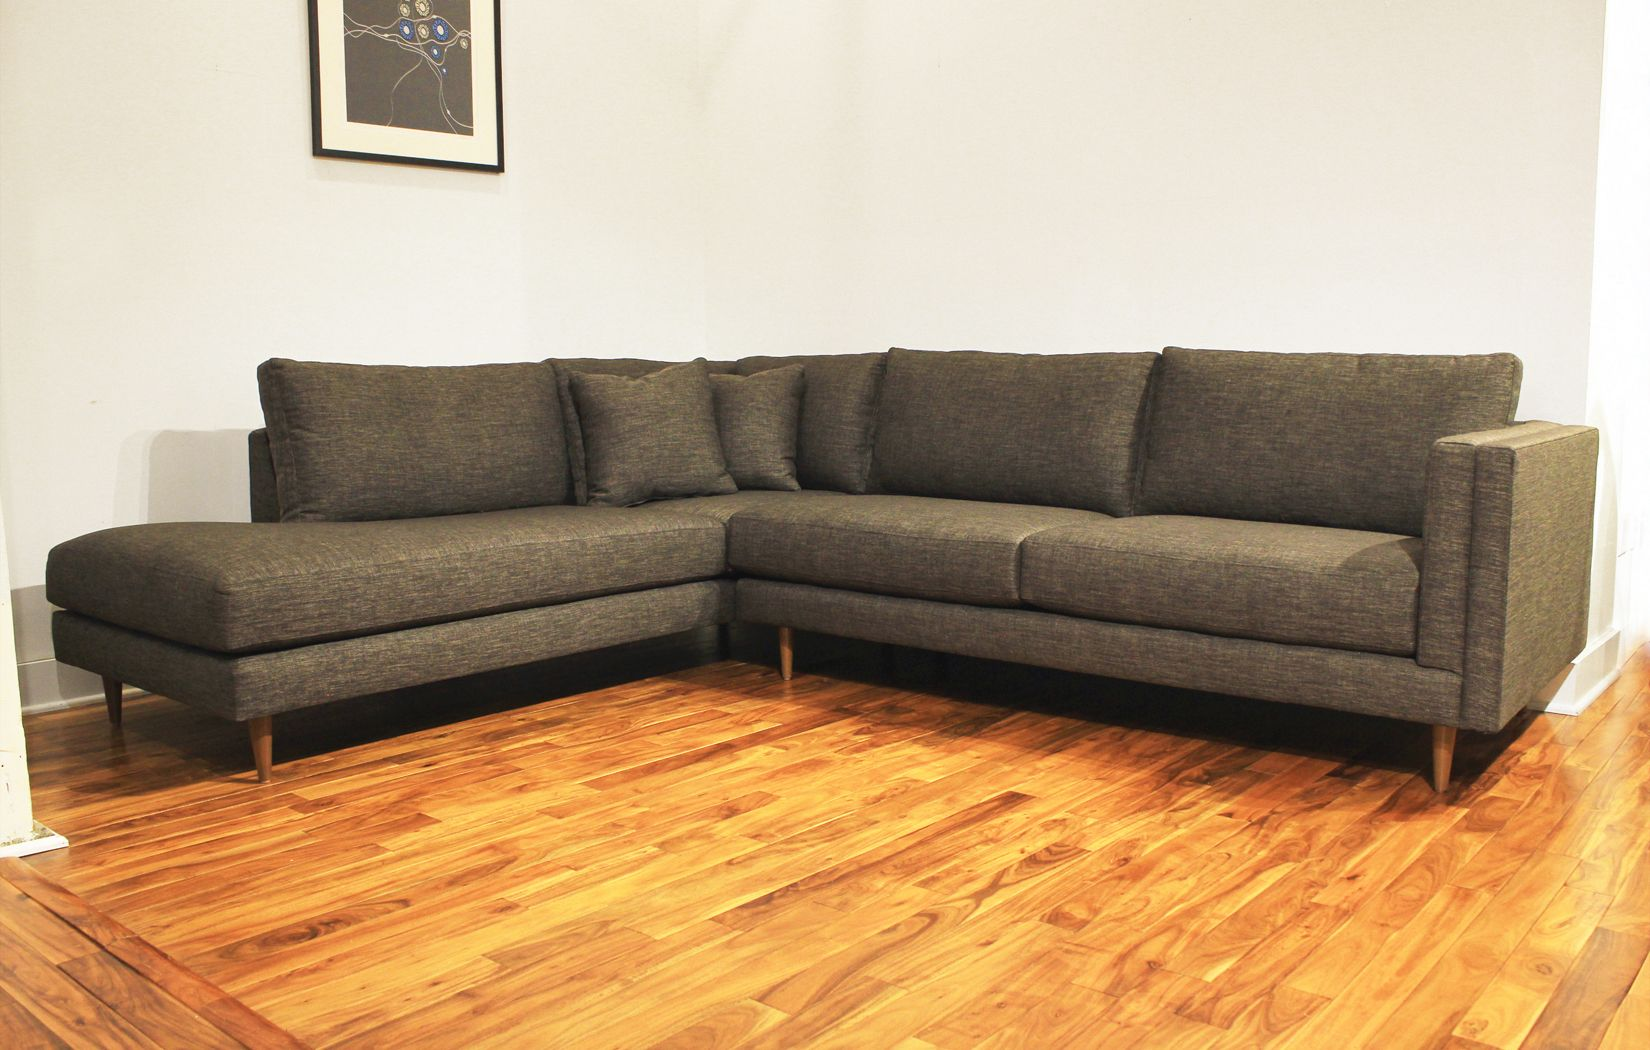 The Caulfield Sectional | couch | Modern couch, Couch ...